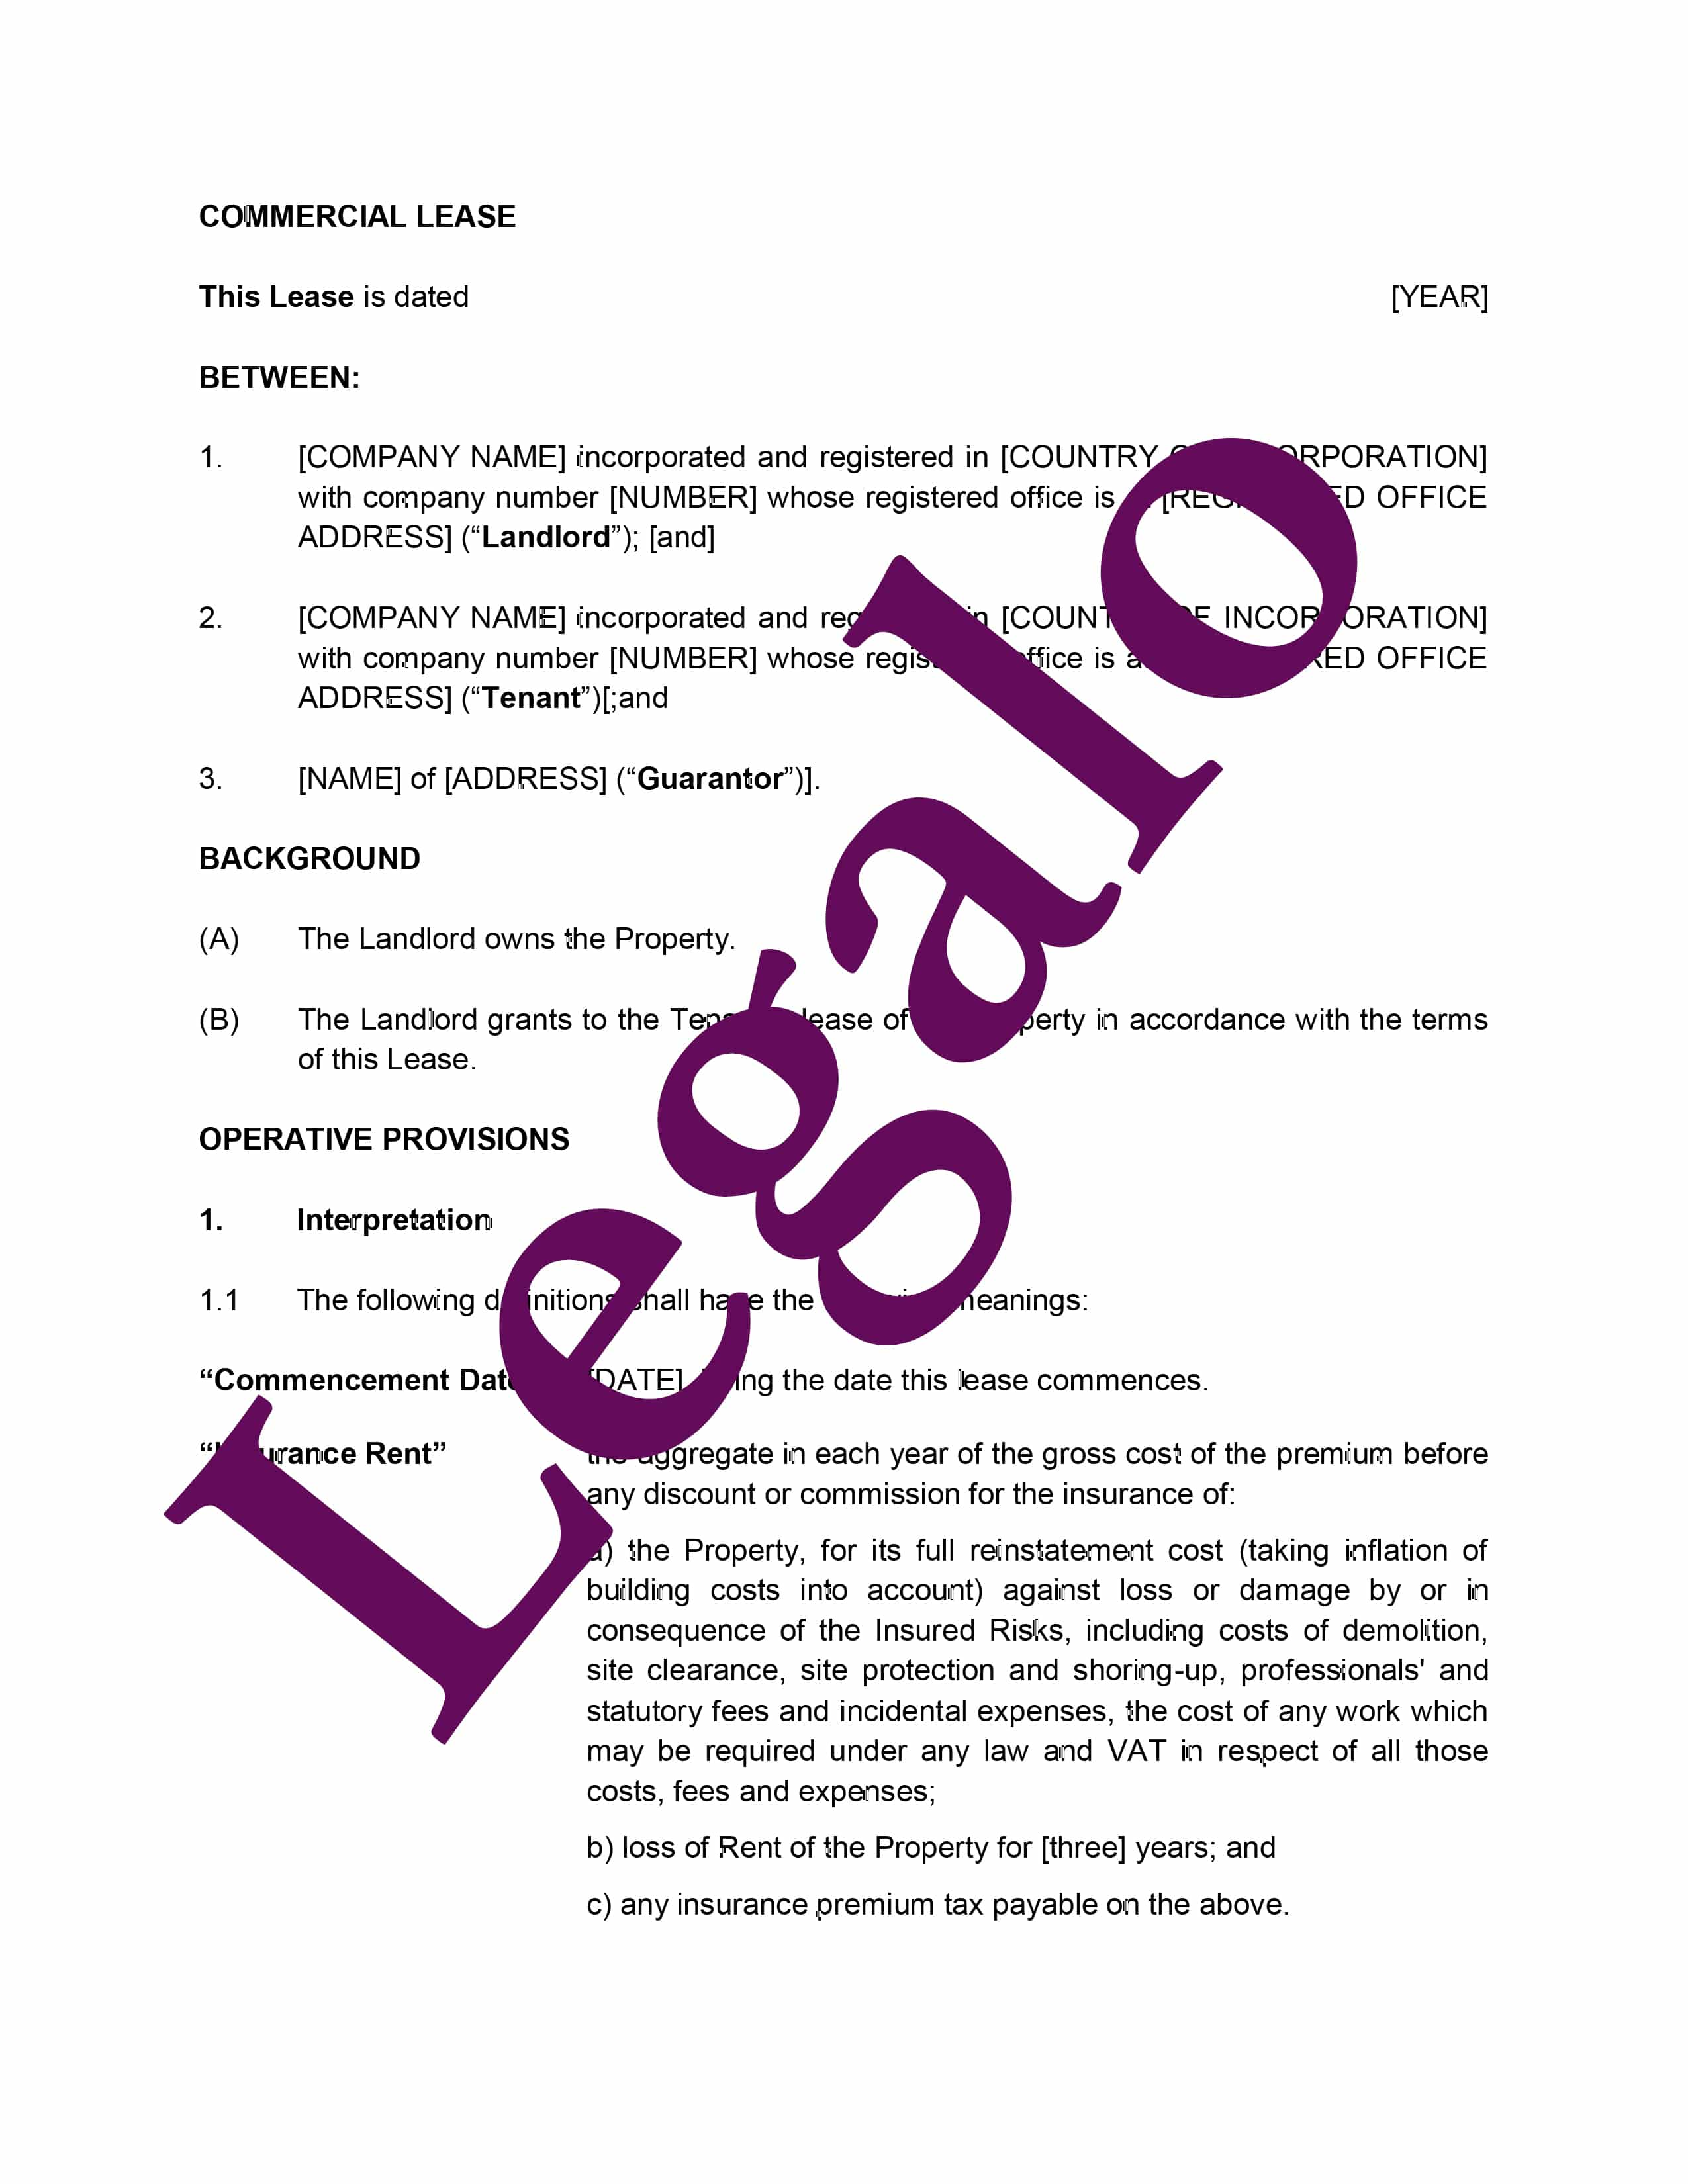 Commercial Lease Agreement preview 1 image